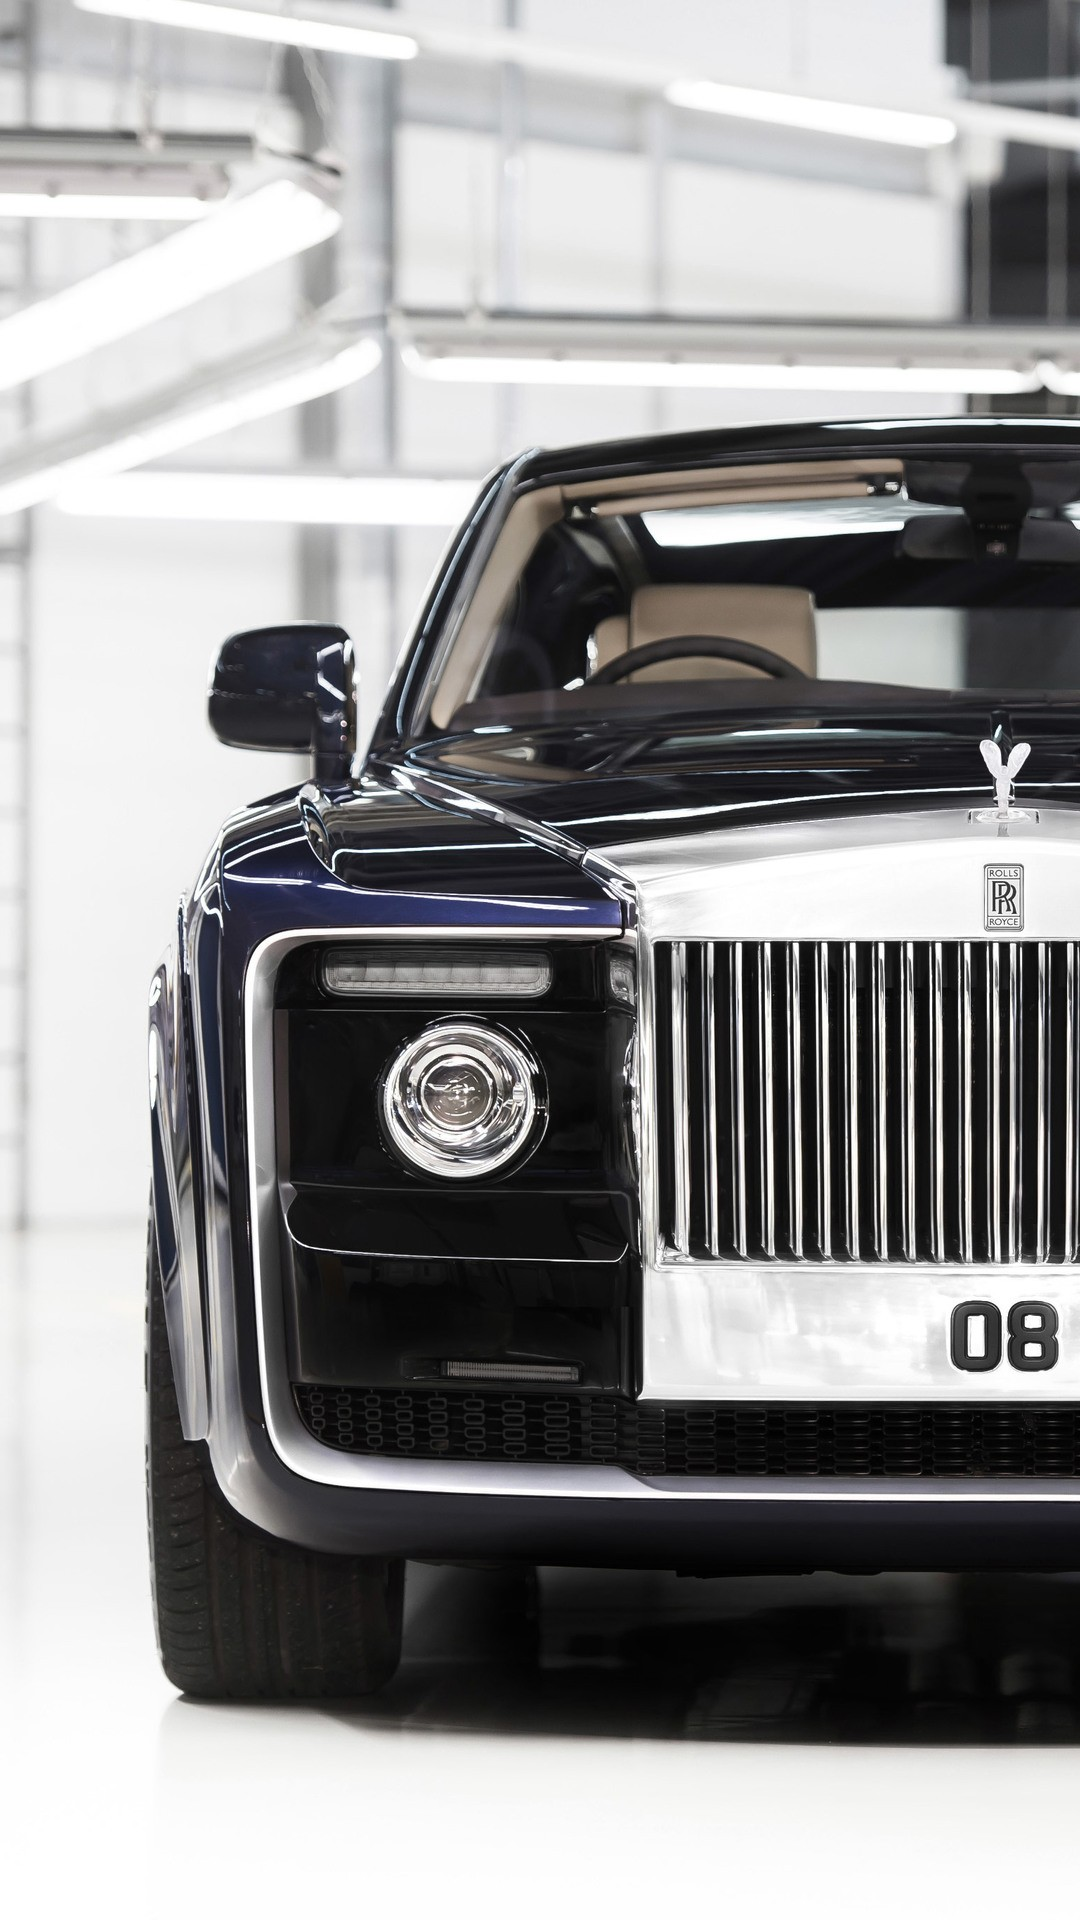 Rolls Royce wallpaper HD Latest Wallpapers